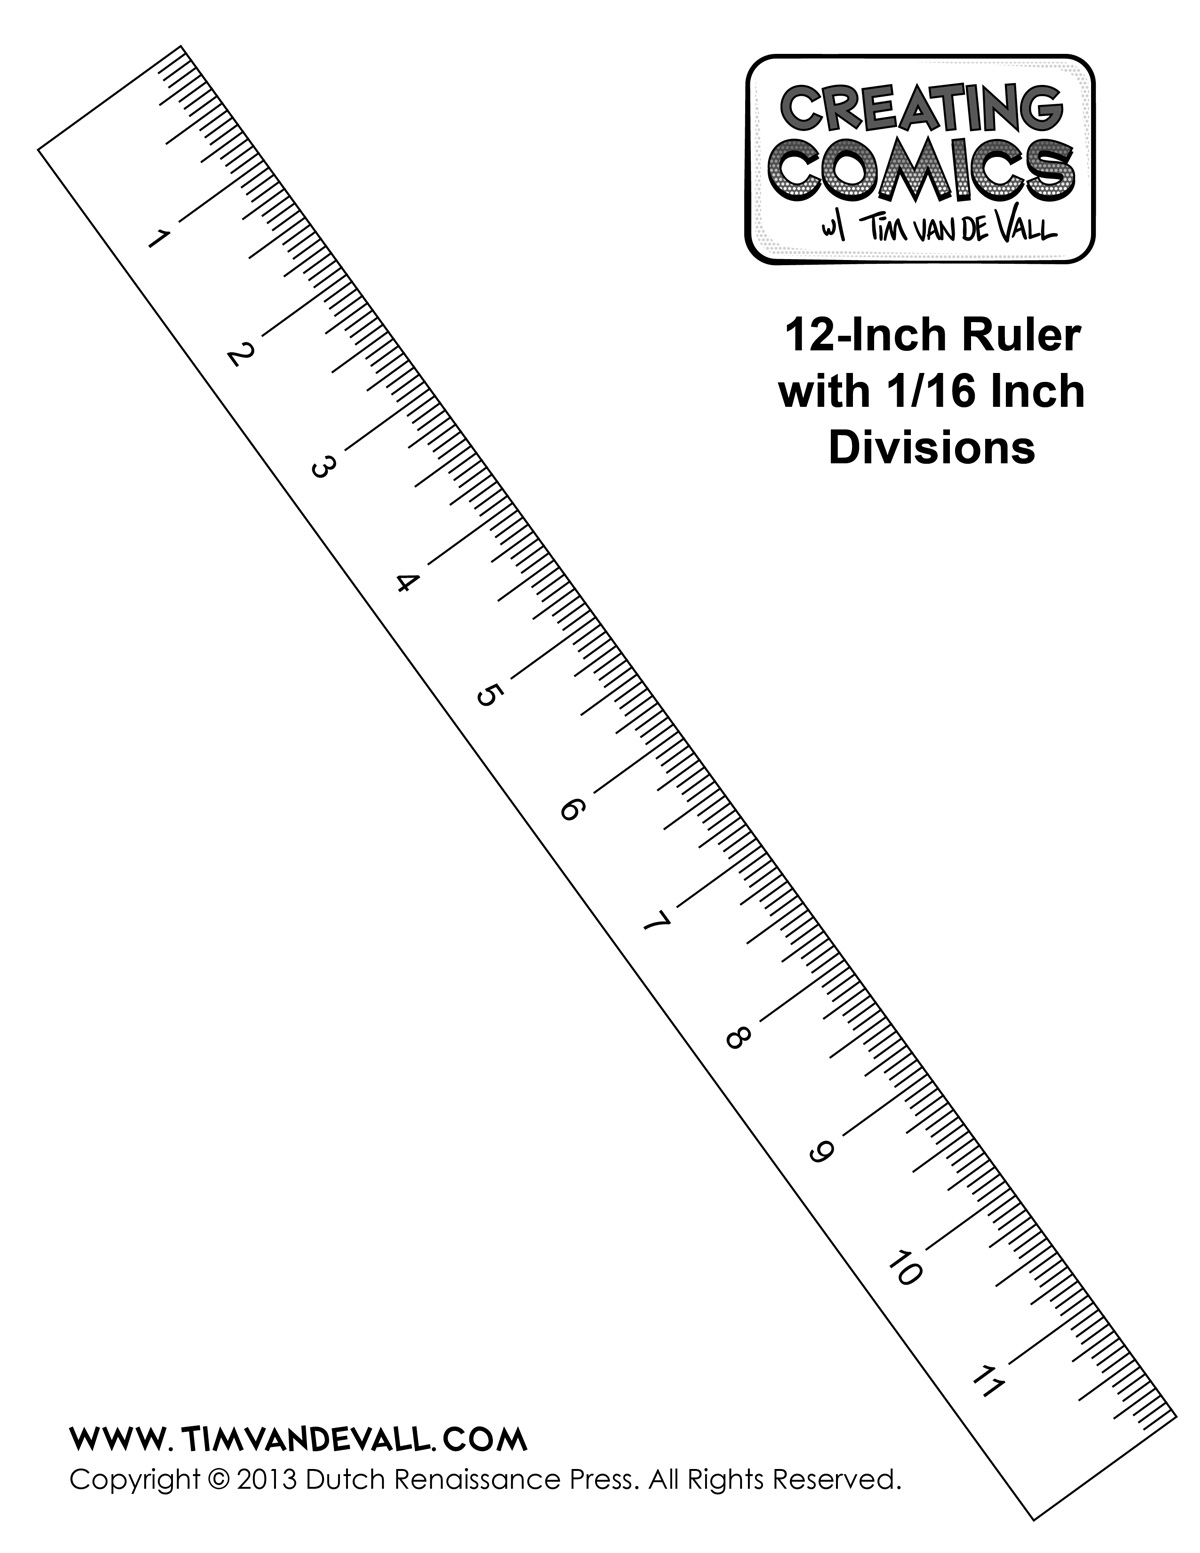 paper rulers Rulers 12 double bevel r12db 12 flat ruler r12f 12 natural wood  071 12 single bevel r12sb 6 natural wood 650 6 paper ruler r6pap.